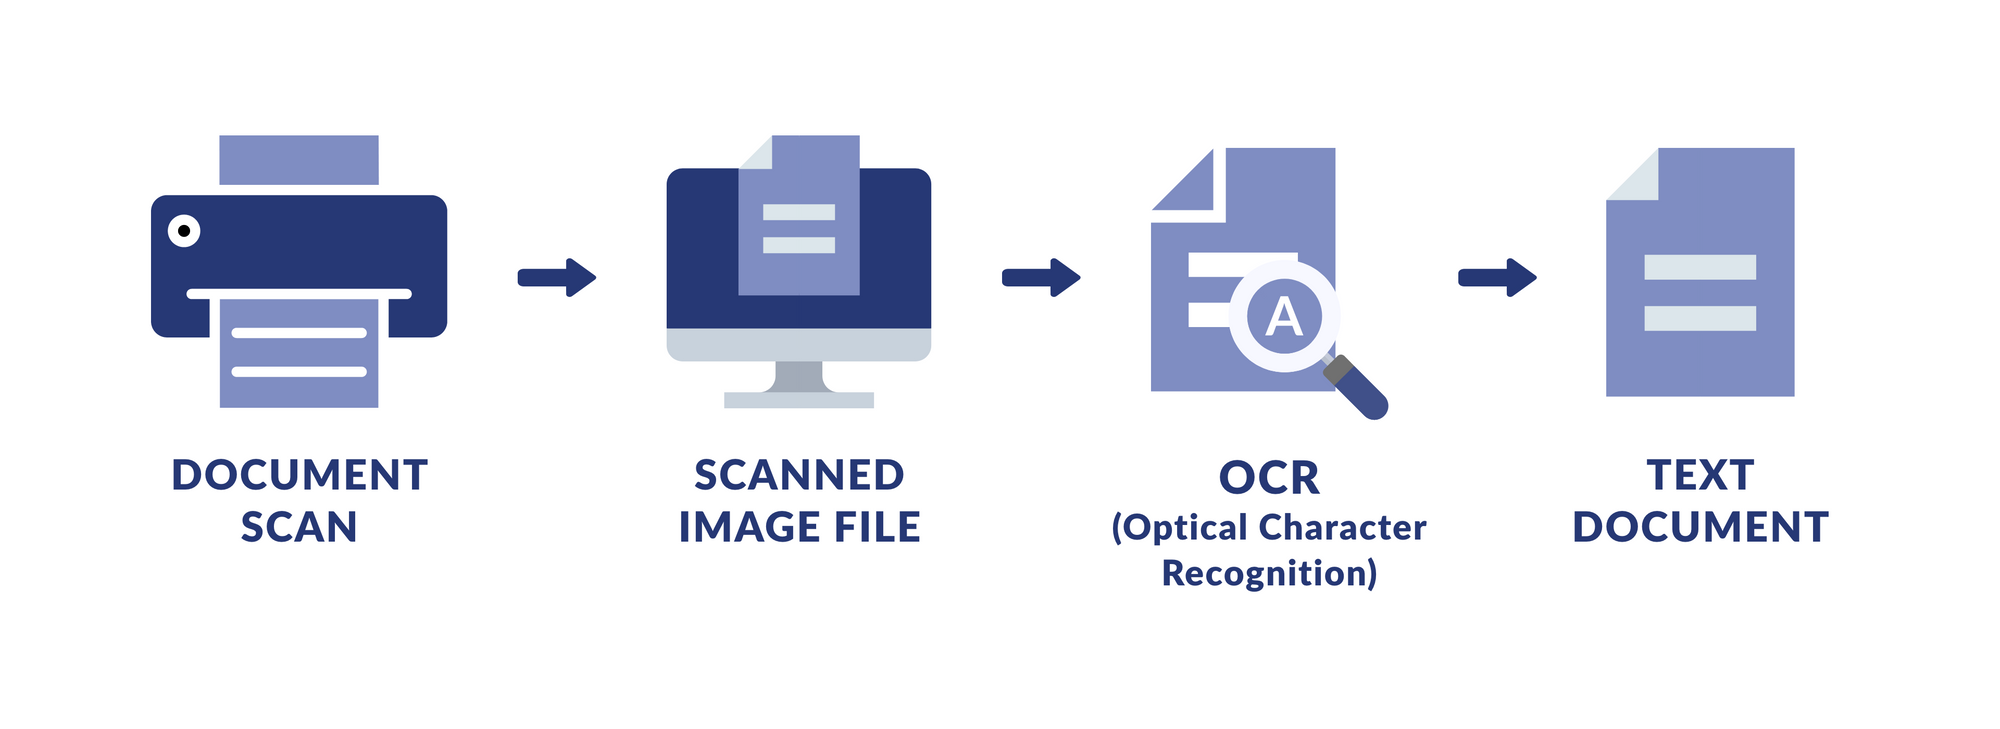 ocr document processing workflow